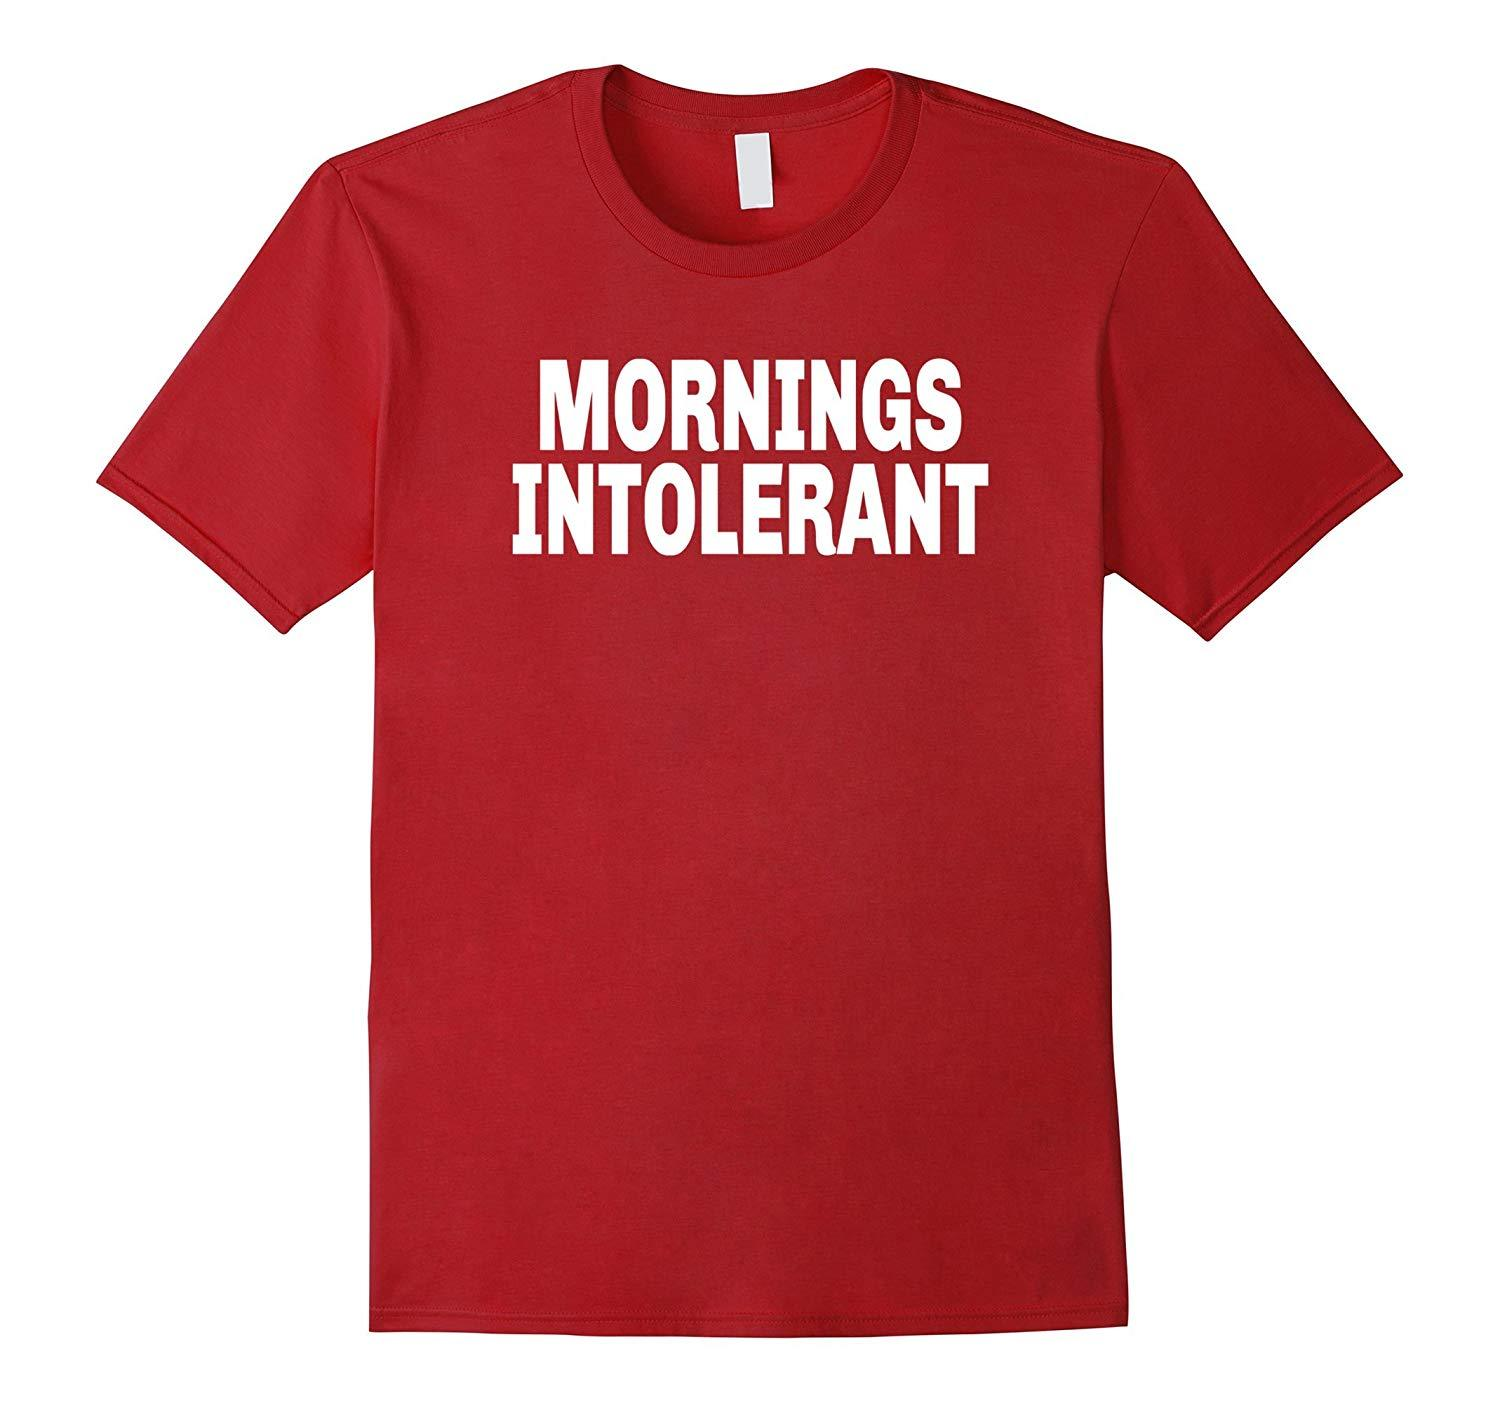 Primary image for New Shirts - Mornings Intolerant Funny T-Shirt For Night People Men